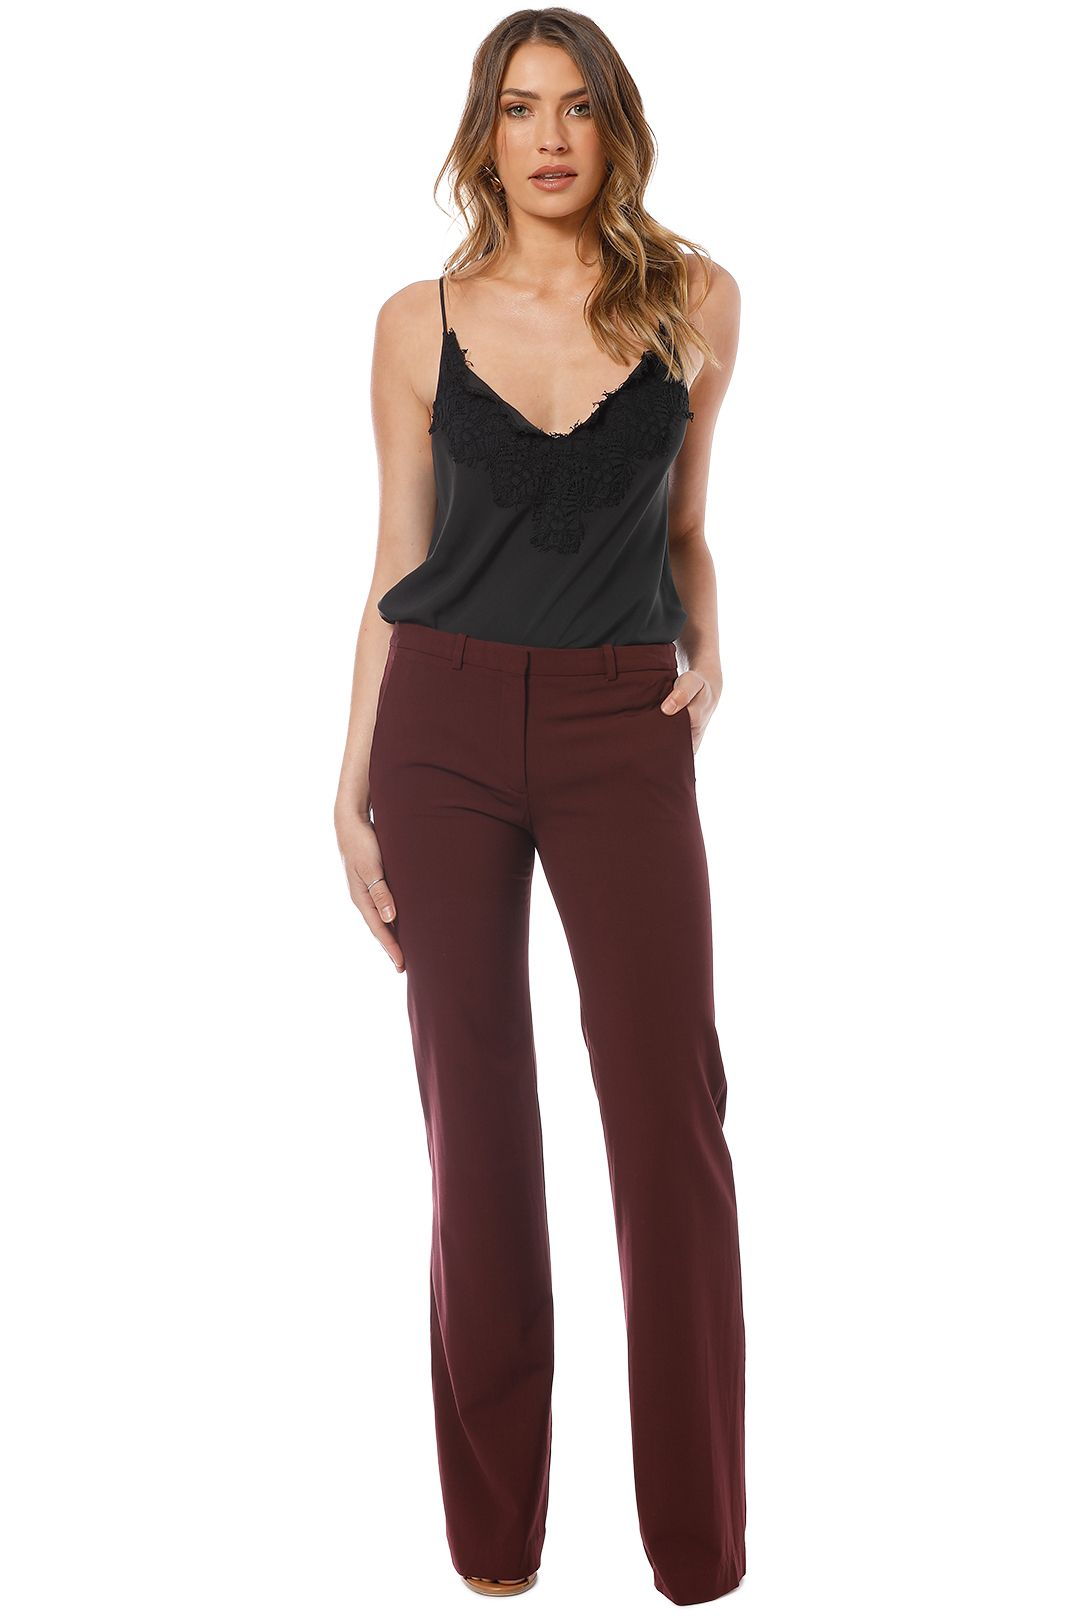 Theory - Crepe Pant - Burgundy - Front